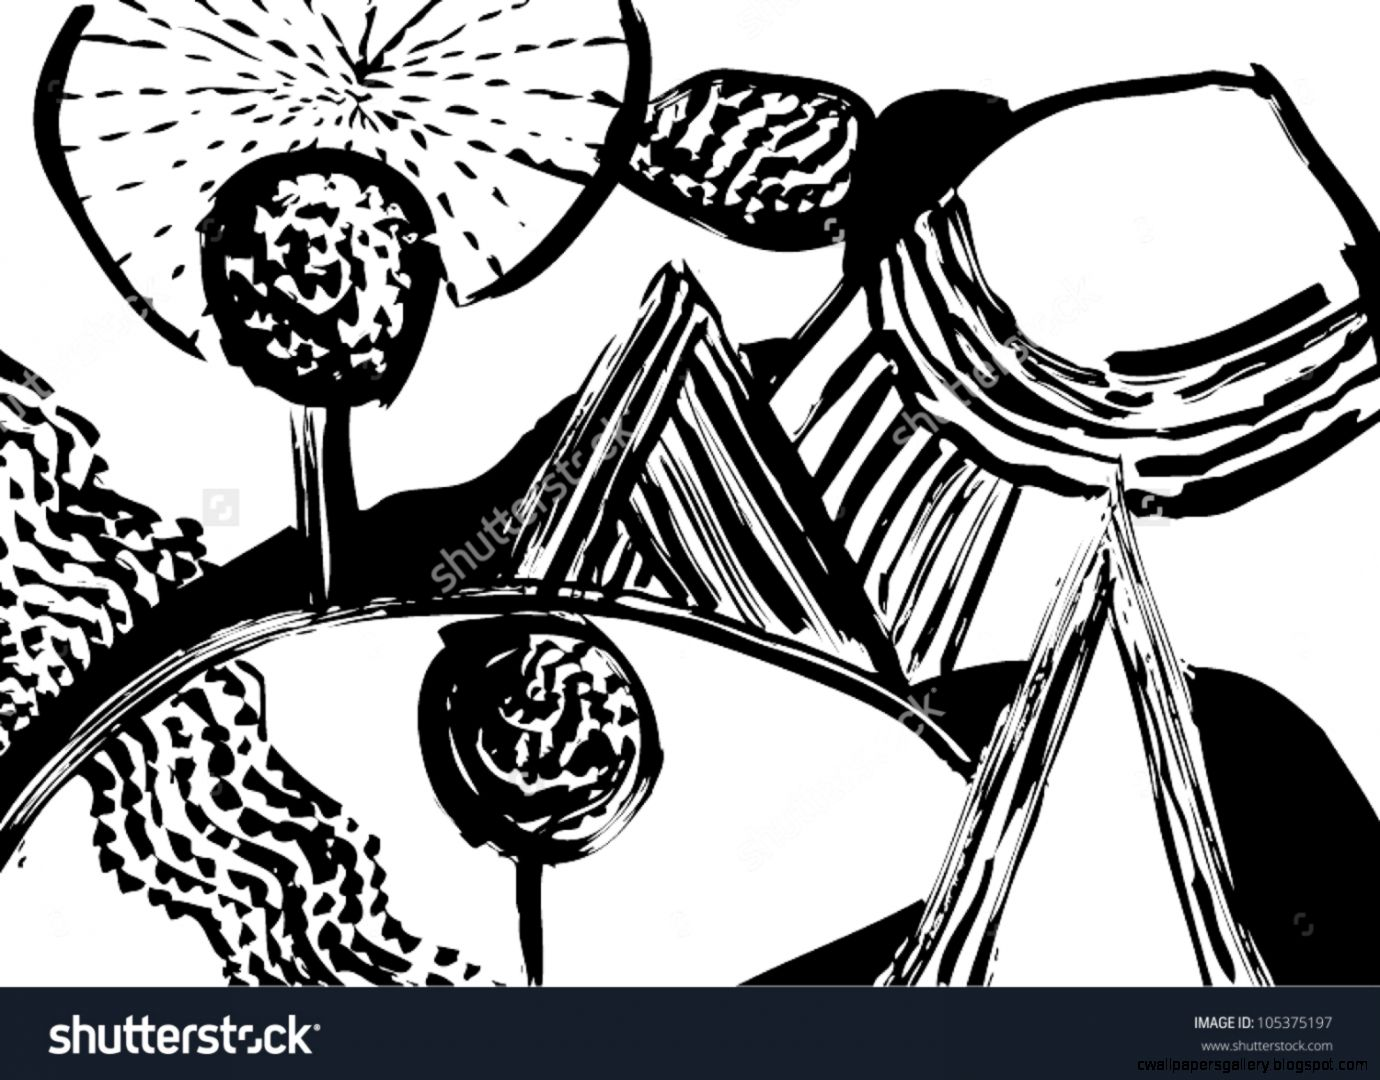 A Vector Illustration Of An Abstract Black And White Nature